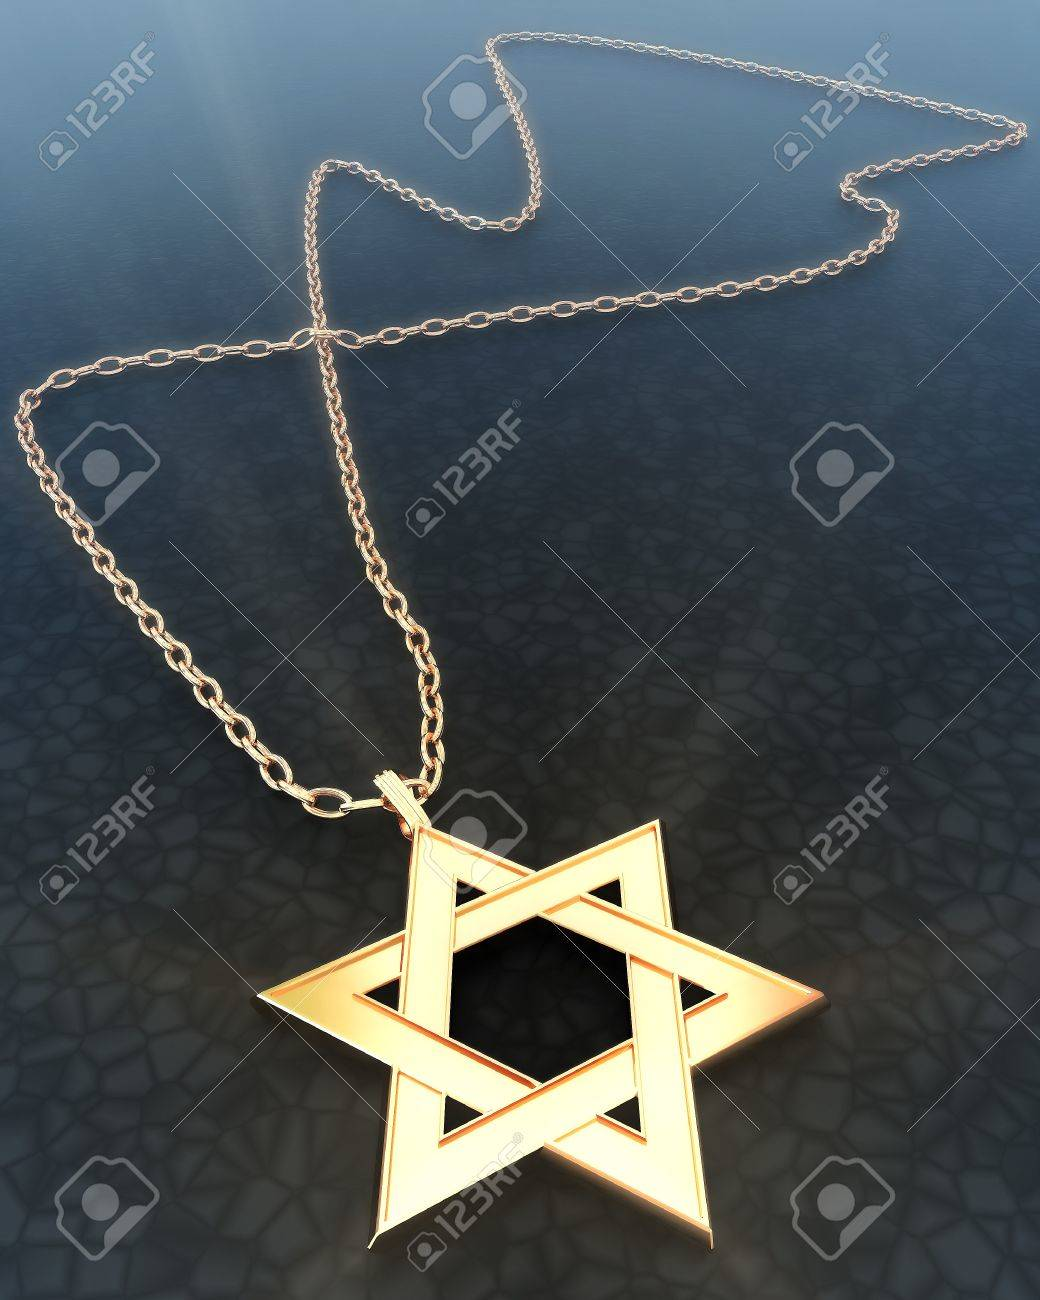 Golden star of David with a chain Stock Photo - 18124170